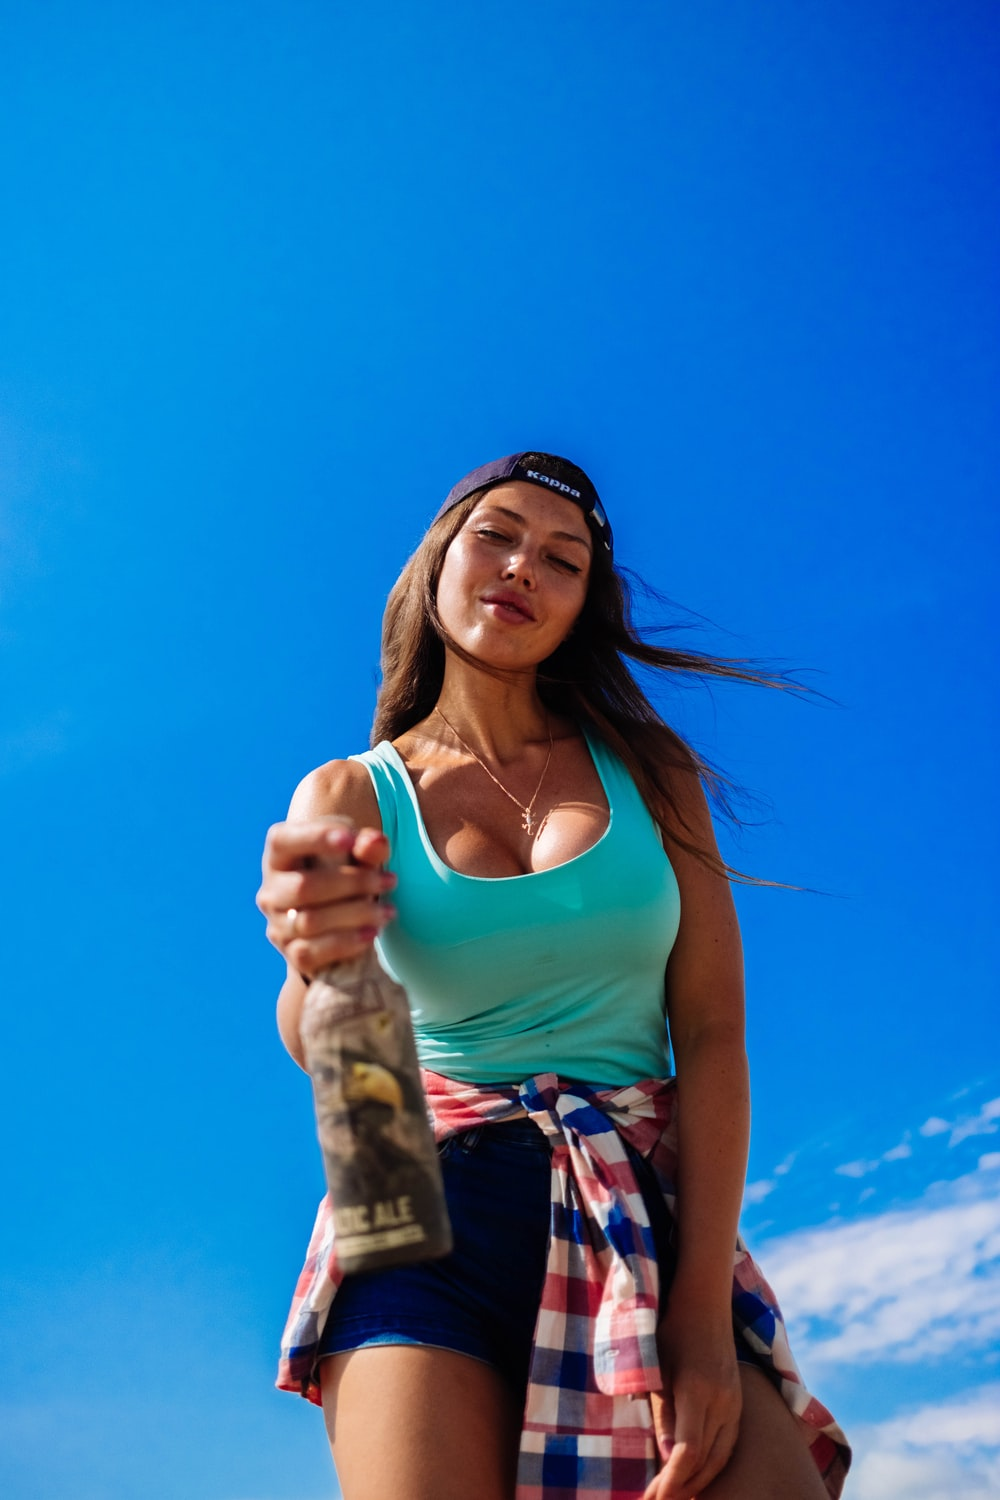 woman wearing blue tank top holding bottle under white clouds and blue sky during daytime